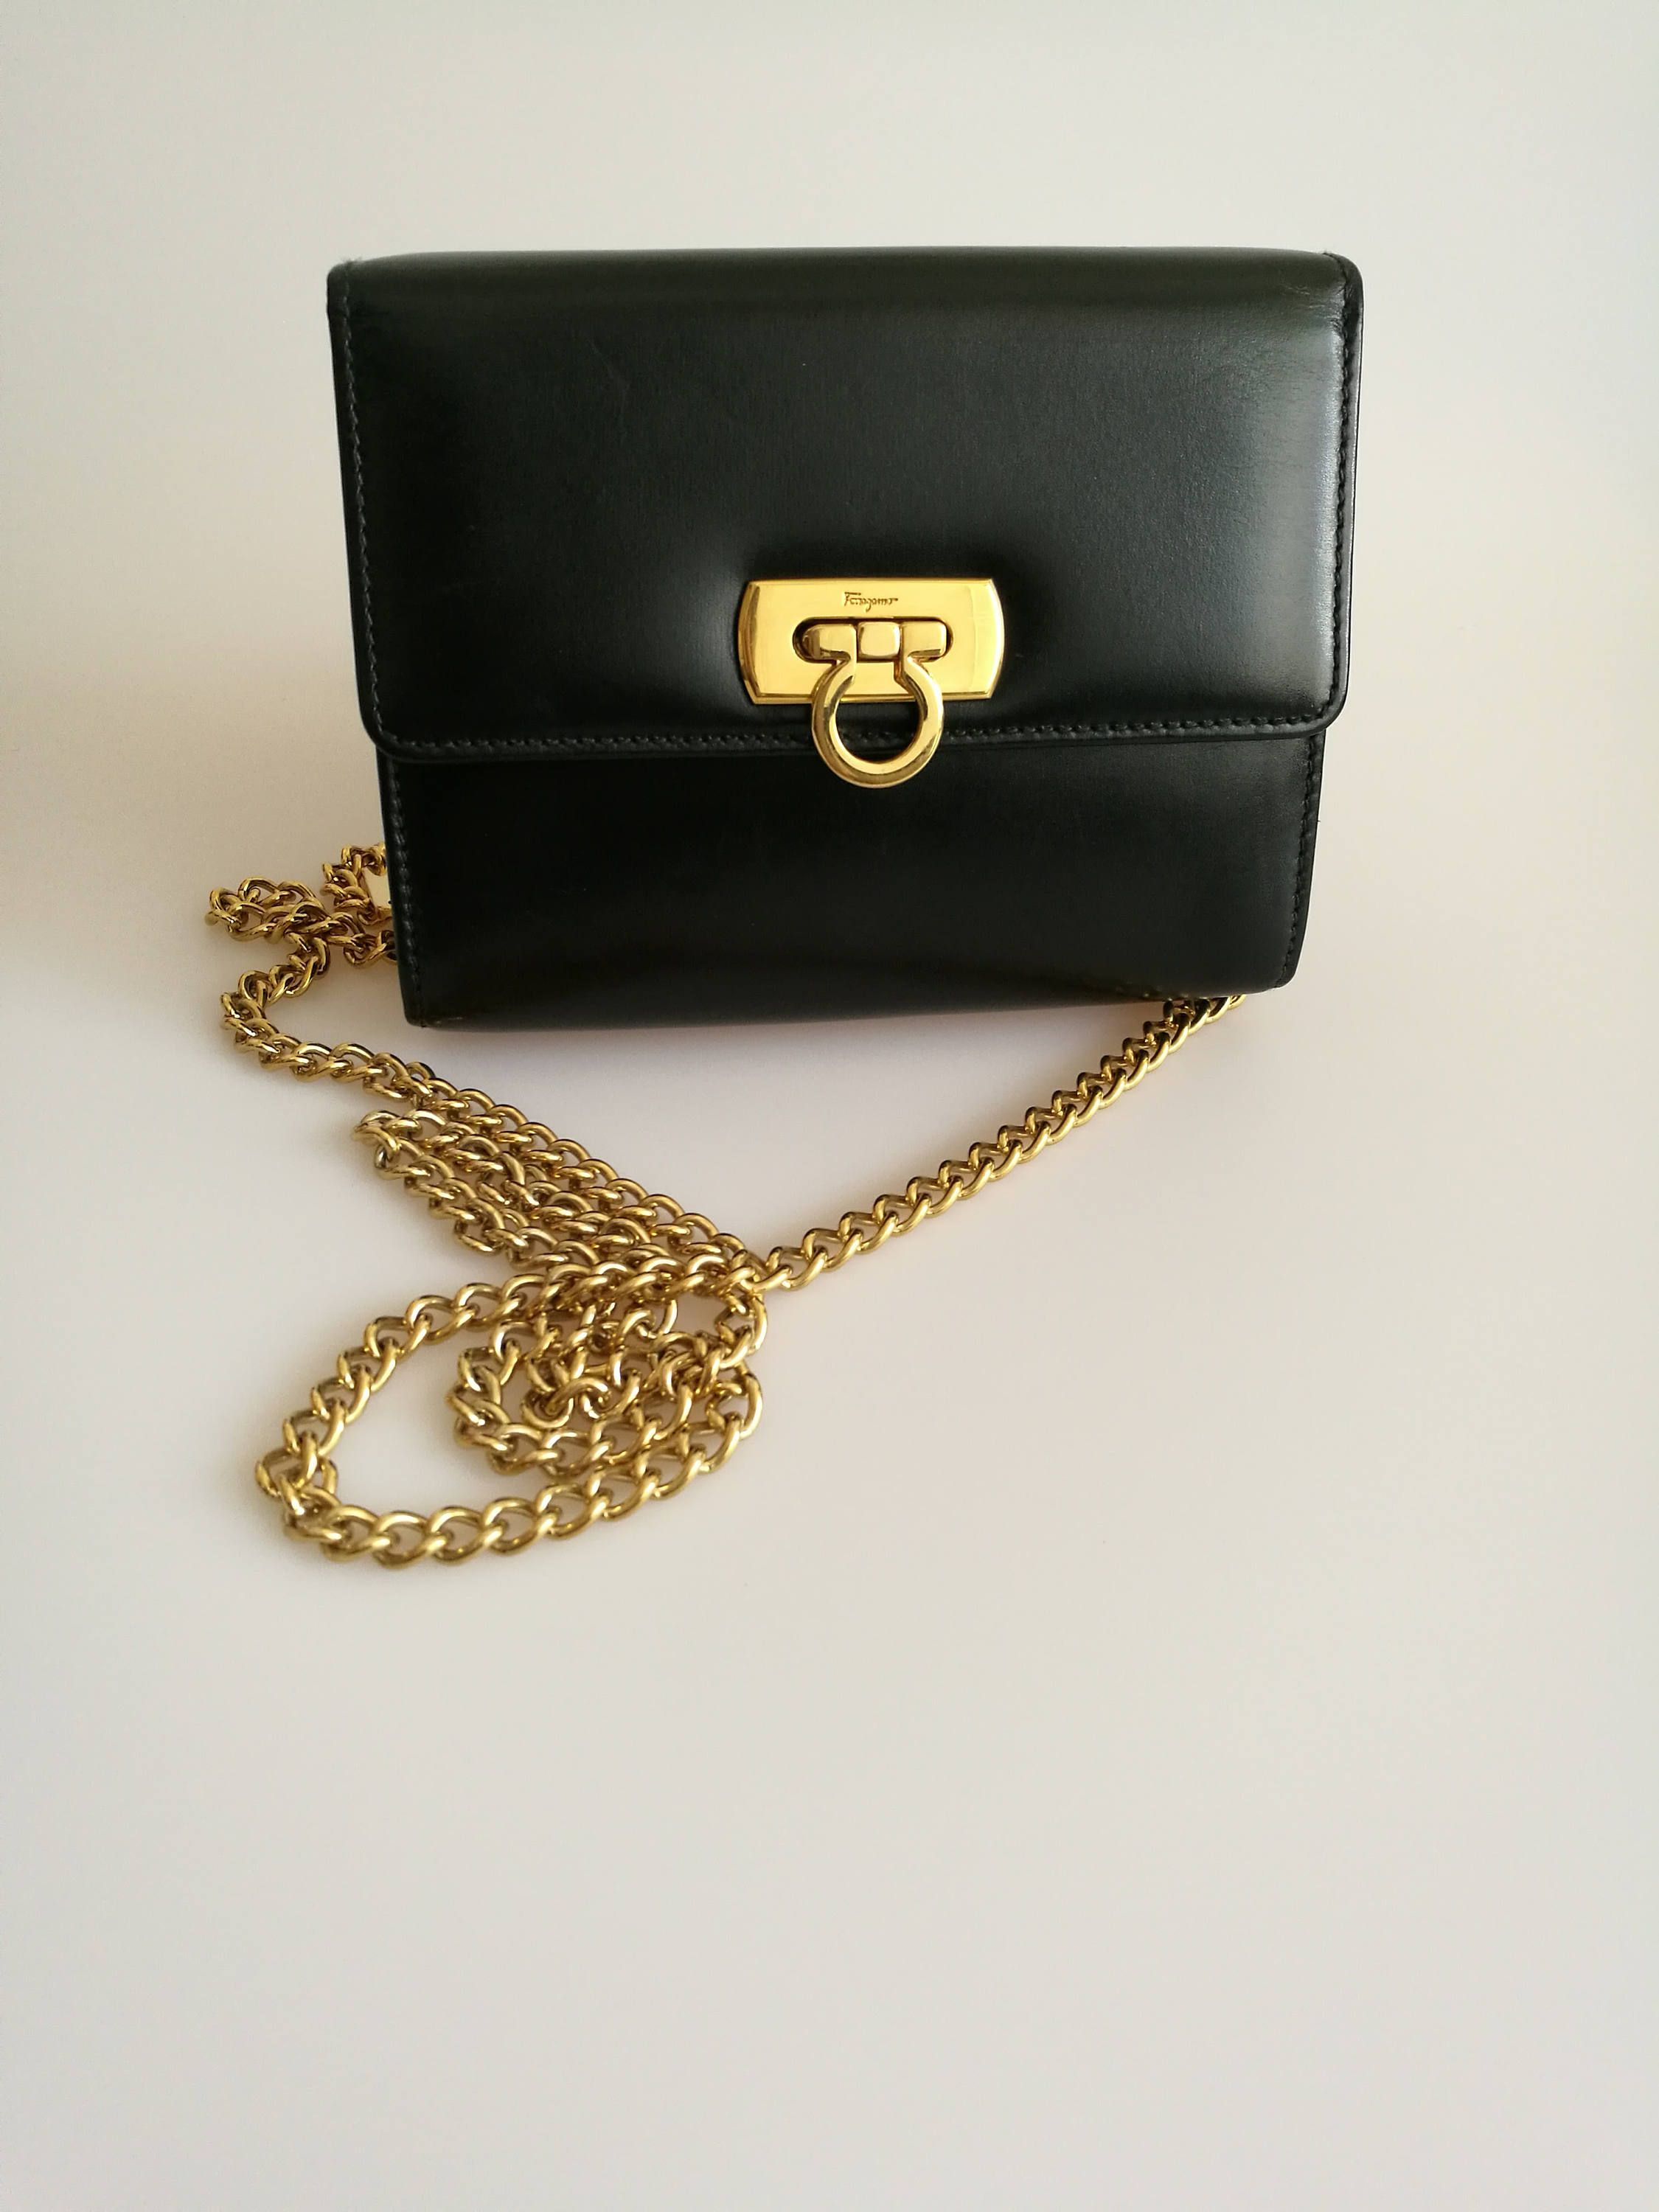 201ba2f5add8 Salvatore Ferragamo Vintage Mini Gancini Black Leather Gold Chain Crossbody Clutch  Bag by DelpheneAvenue on Etsy